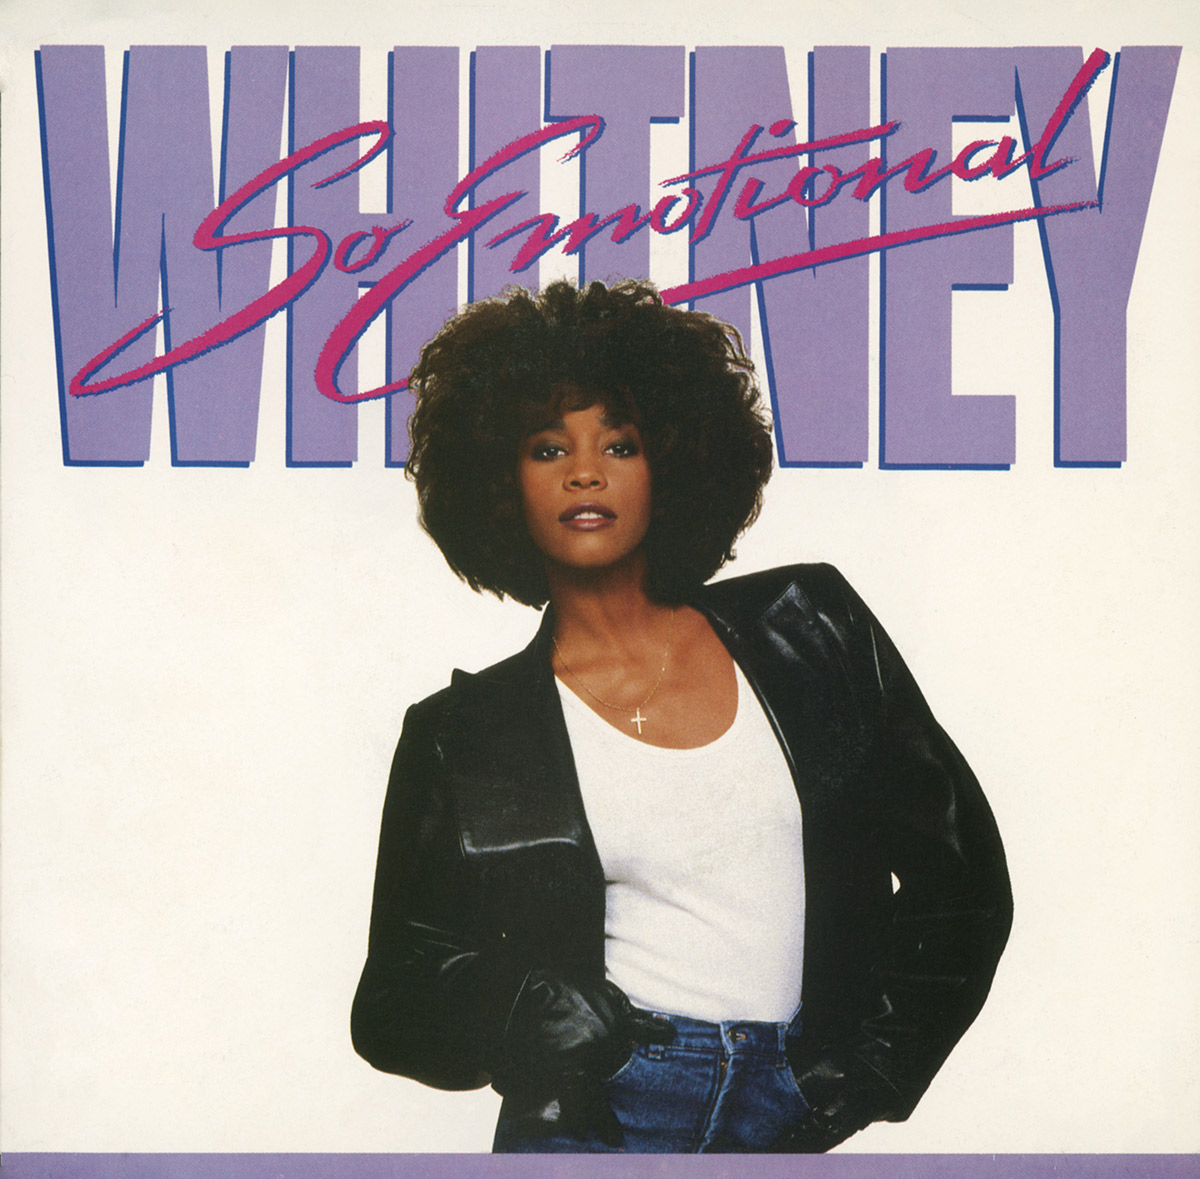 Find It Houston: Whitney Houston 'So Emotional' Released This Day In 1987